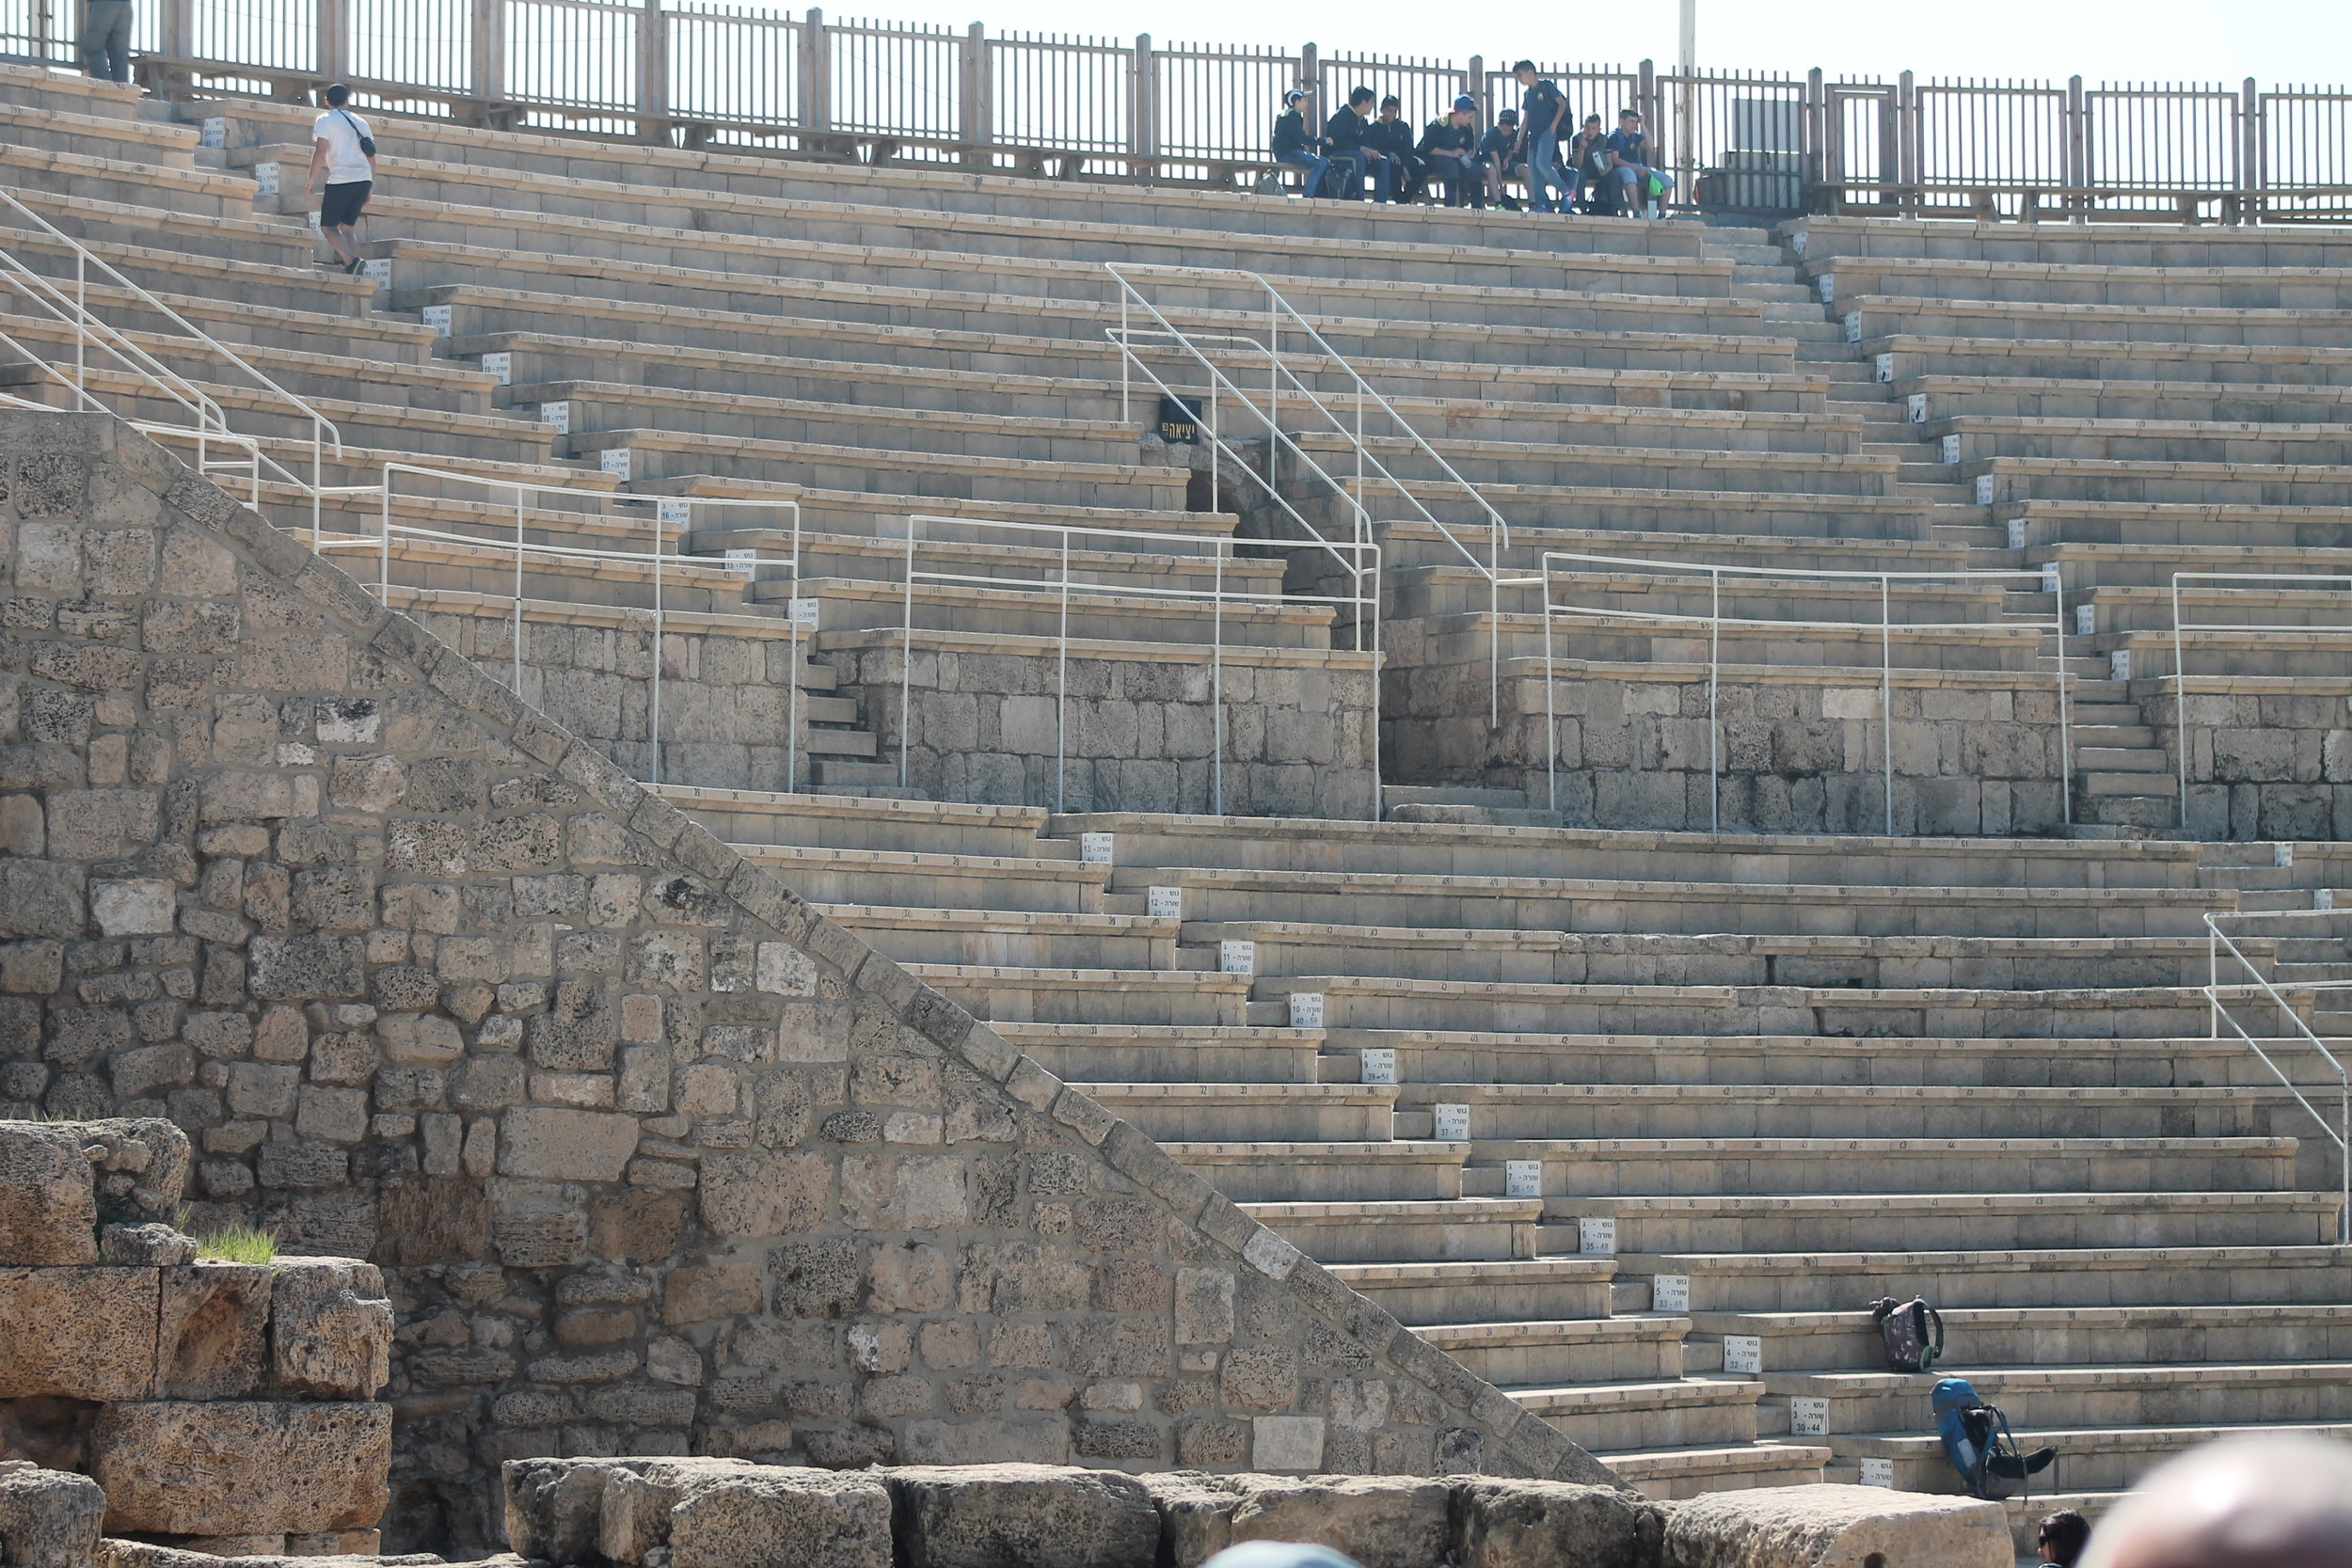 The theater at Caesarea Maritima, the ancient port built by Herod the Great as a grand place to enter the land.